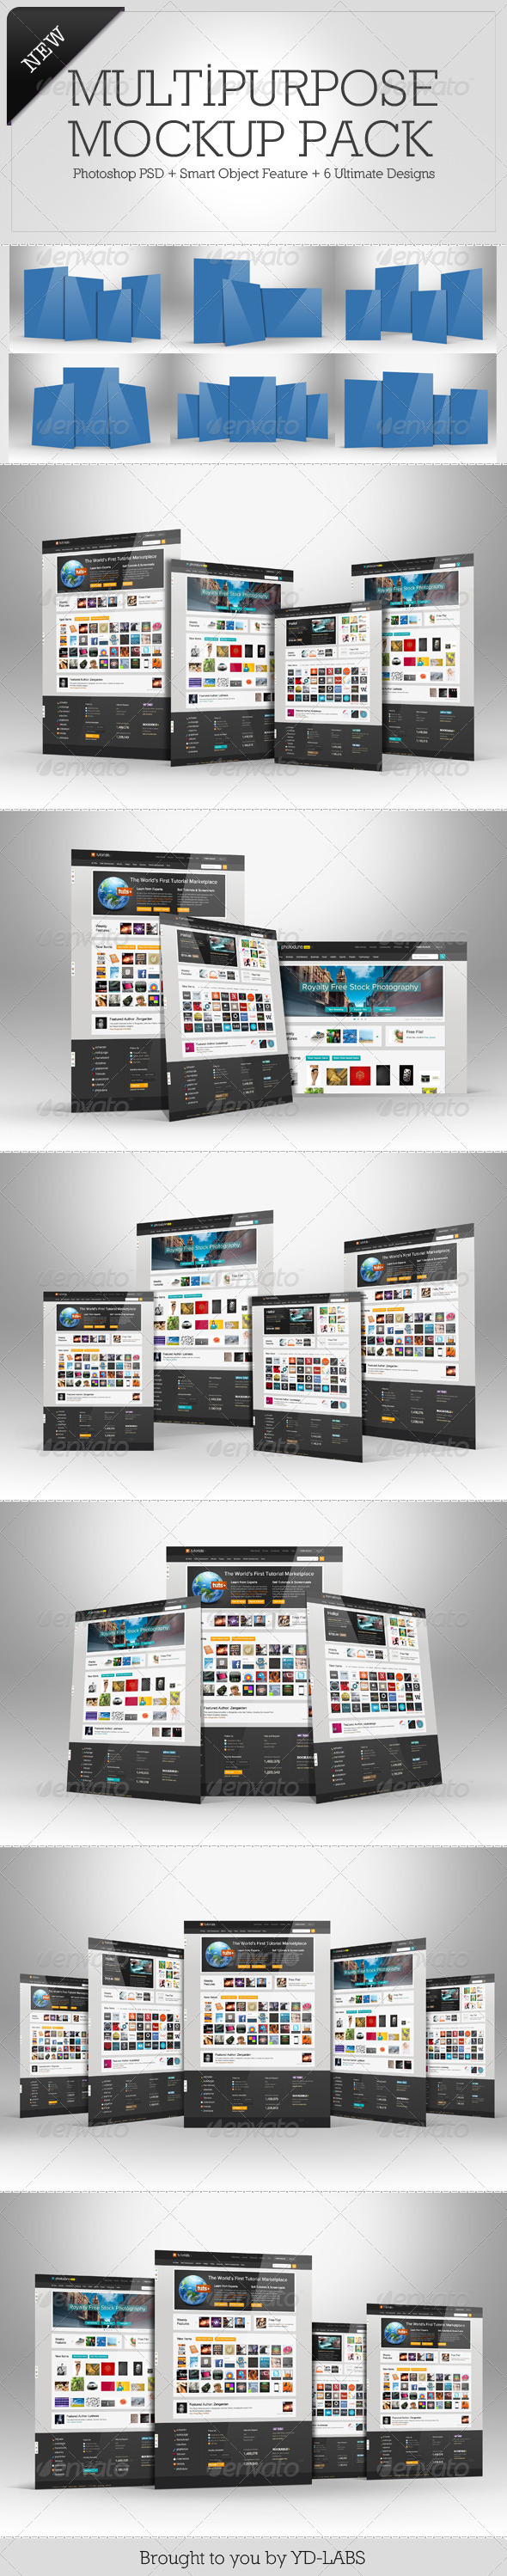 GraphicRiver Multipurpose Mockup Pack 3 4289956